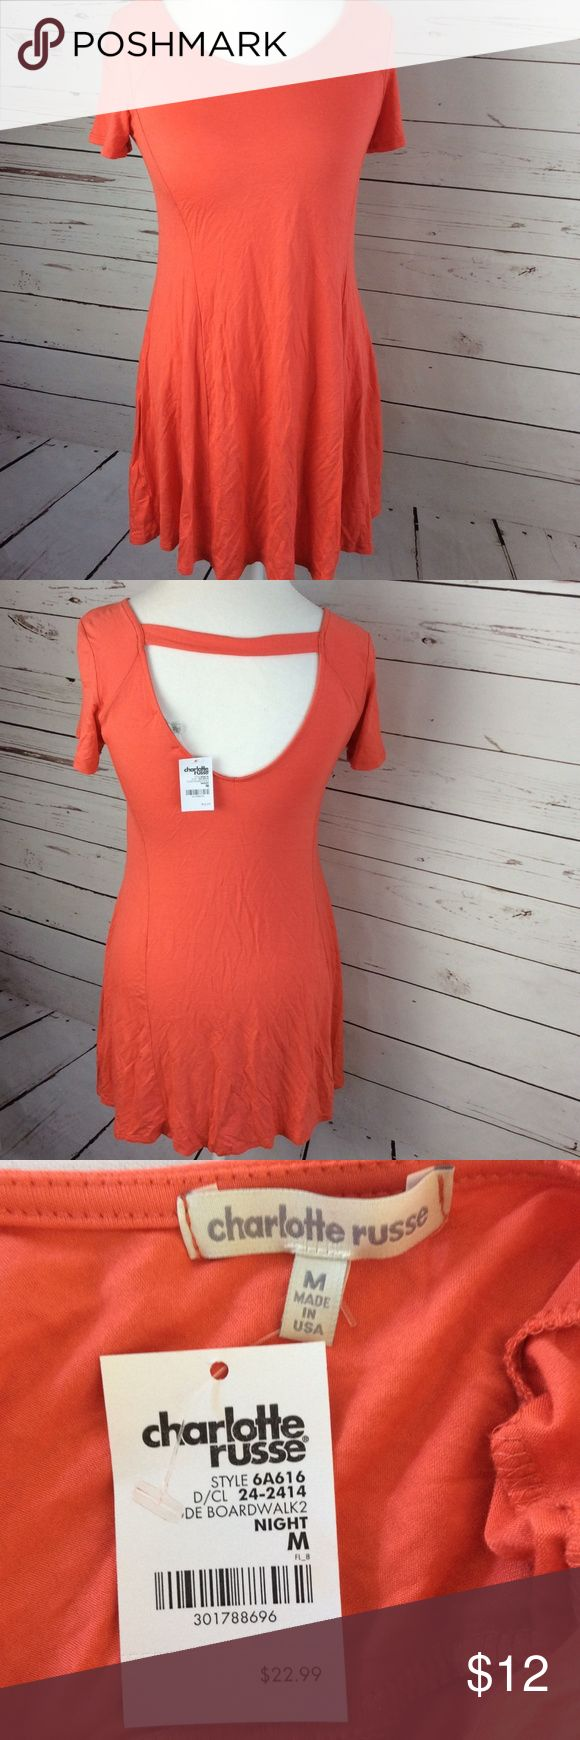 Charlotte Russe Womens T Shirt Dress Orange Open 100% money back guarantee, free returns and excellent customer service.  Your item will ship within 24 hours after payment is received (excluding weekends and Holidays)  Please let us know if you have any questions.   Charlotte Russe Womens Flowy T Shirt Dress Size Medium Orange Open Back  Location: M2  Our items are all from a pet free, smoke free home.  Items are purchased locally or donated so we are not aware if they have formally been…